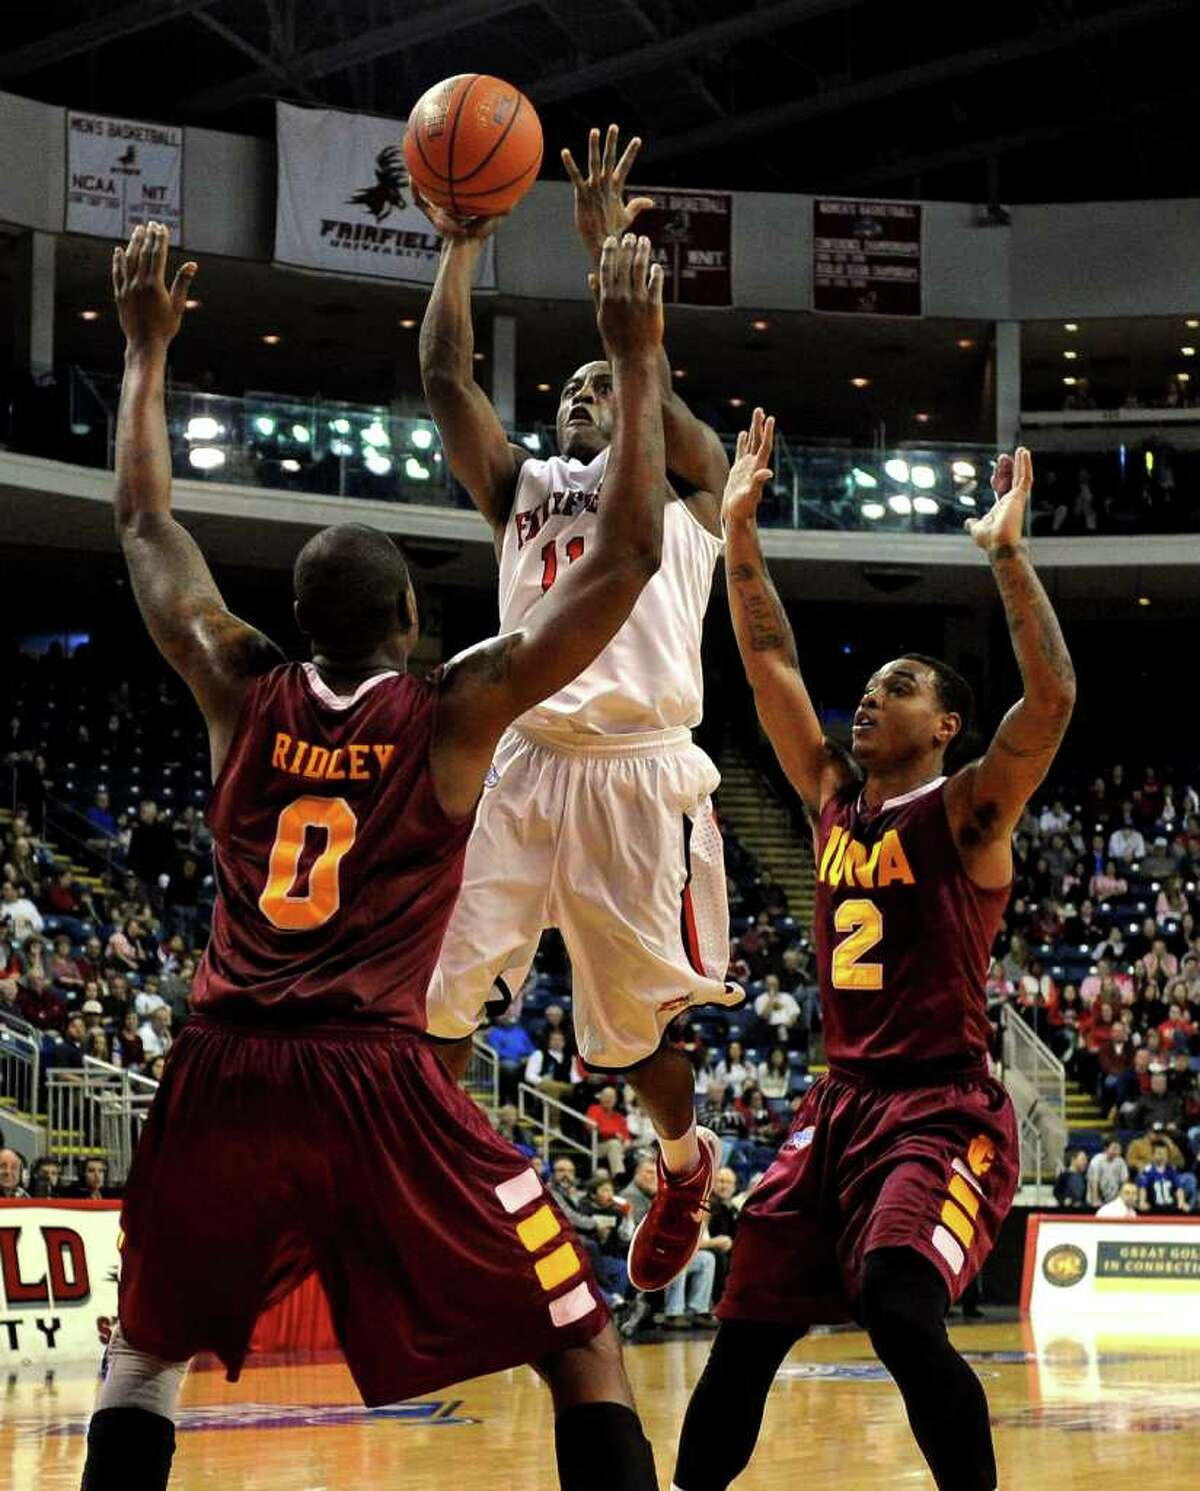 Fairfield University's #11 Desmond Wade attempts a jump shot between Iona's #0 Taaj Ridley and #2 Lamont James, during men's basketball action at the Webster Bank Arena in Bridgeport, Conn. on Friday January 27, 2012.